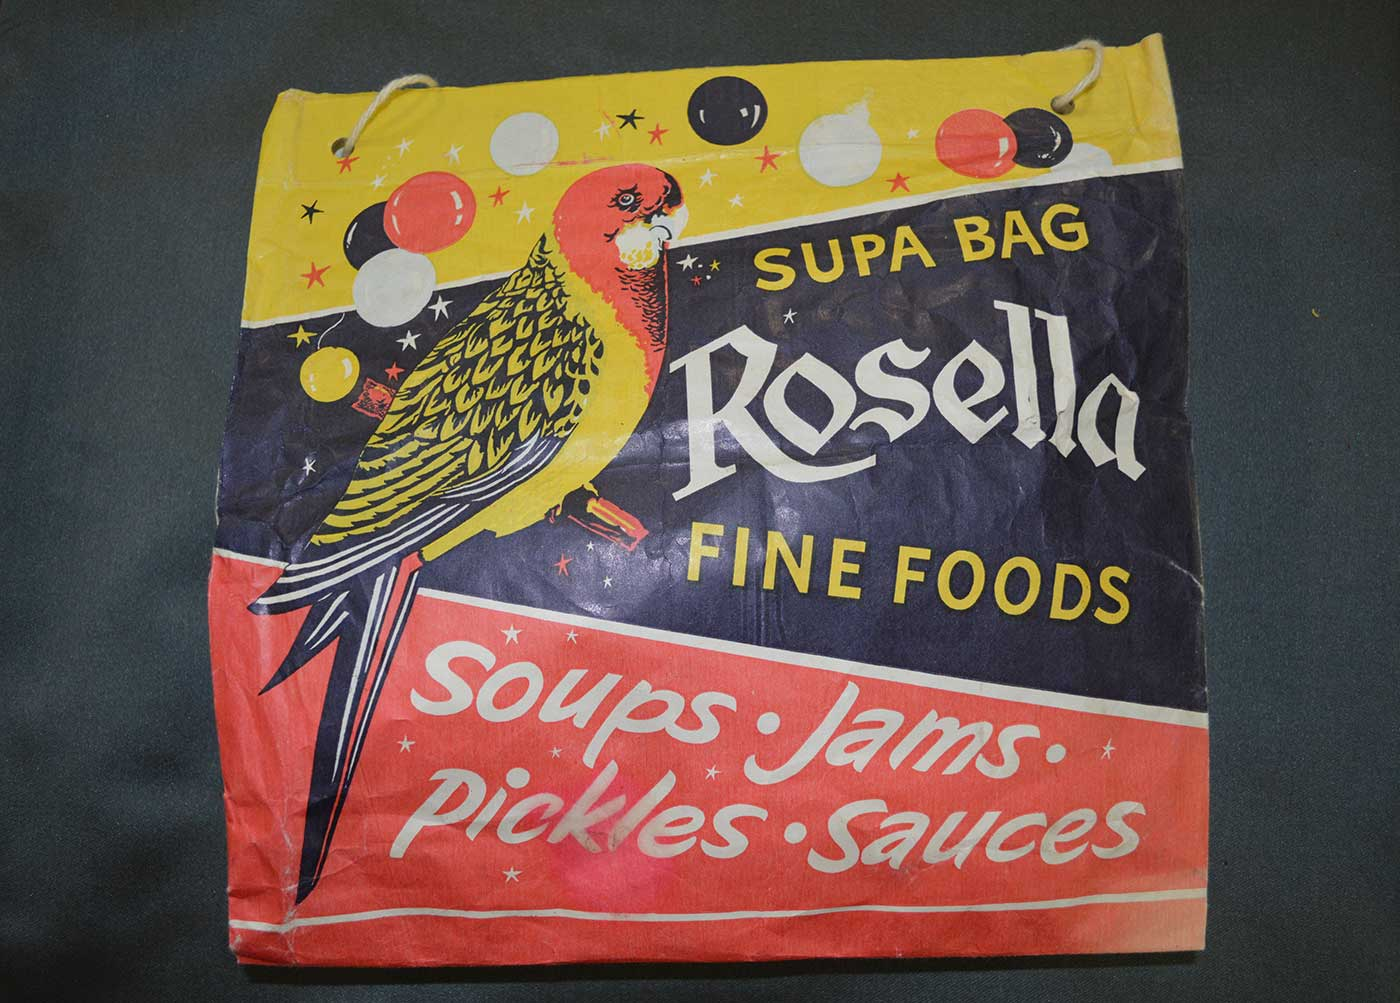 Colour photograph of a show bag with printed text 'Supa Bag, Rosella Fine Foods, Soups, Jams, Pickles, Sauces'. - click to view larger image